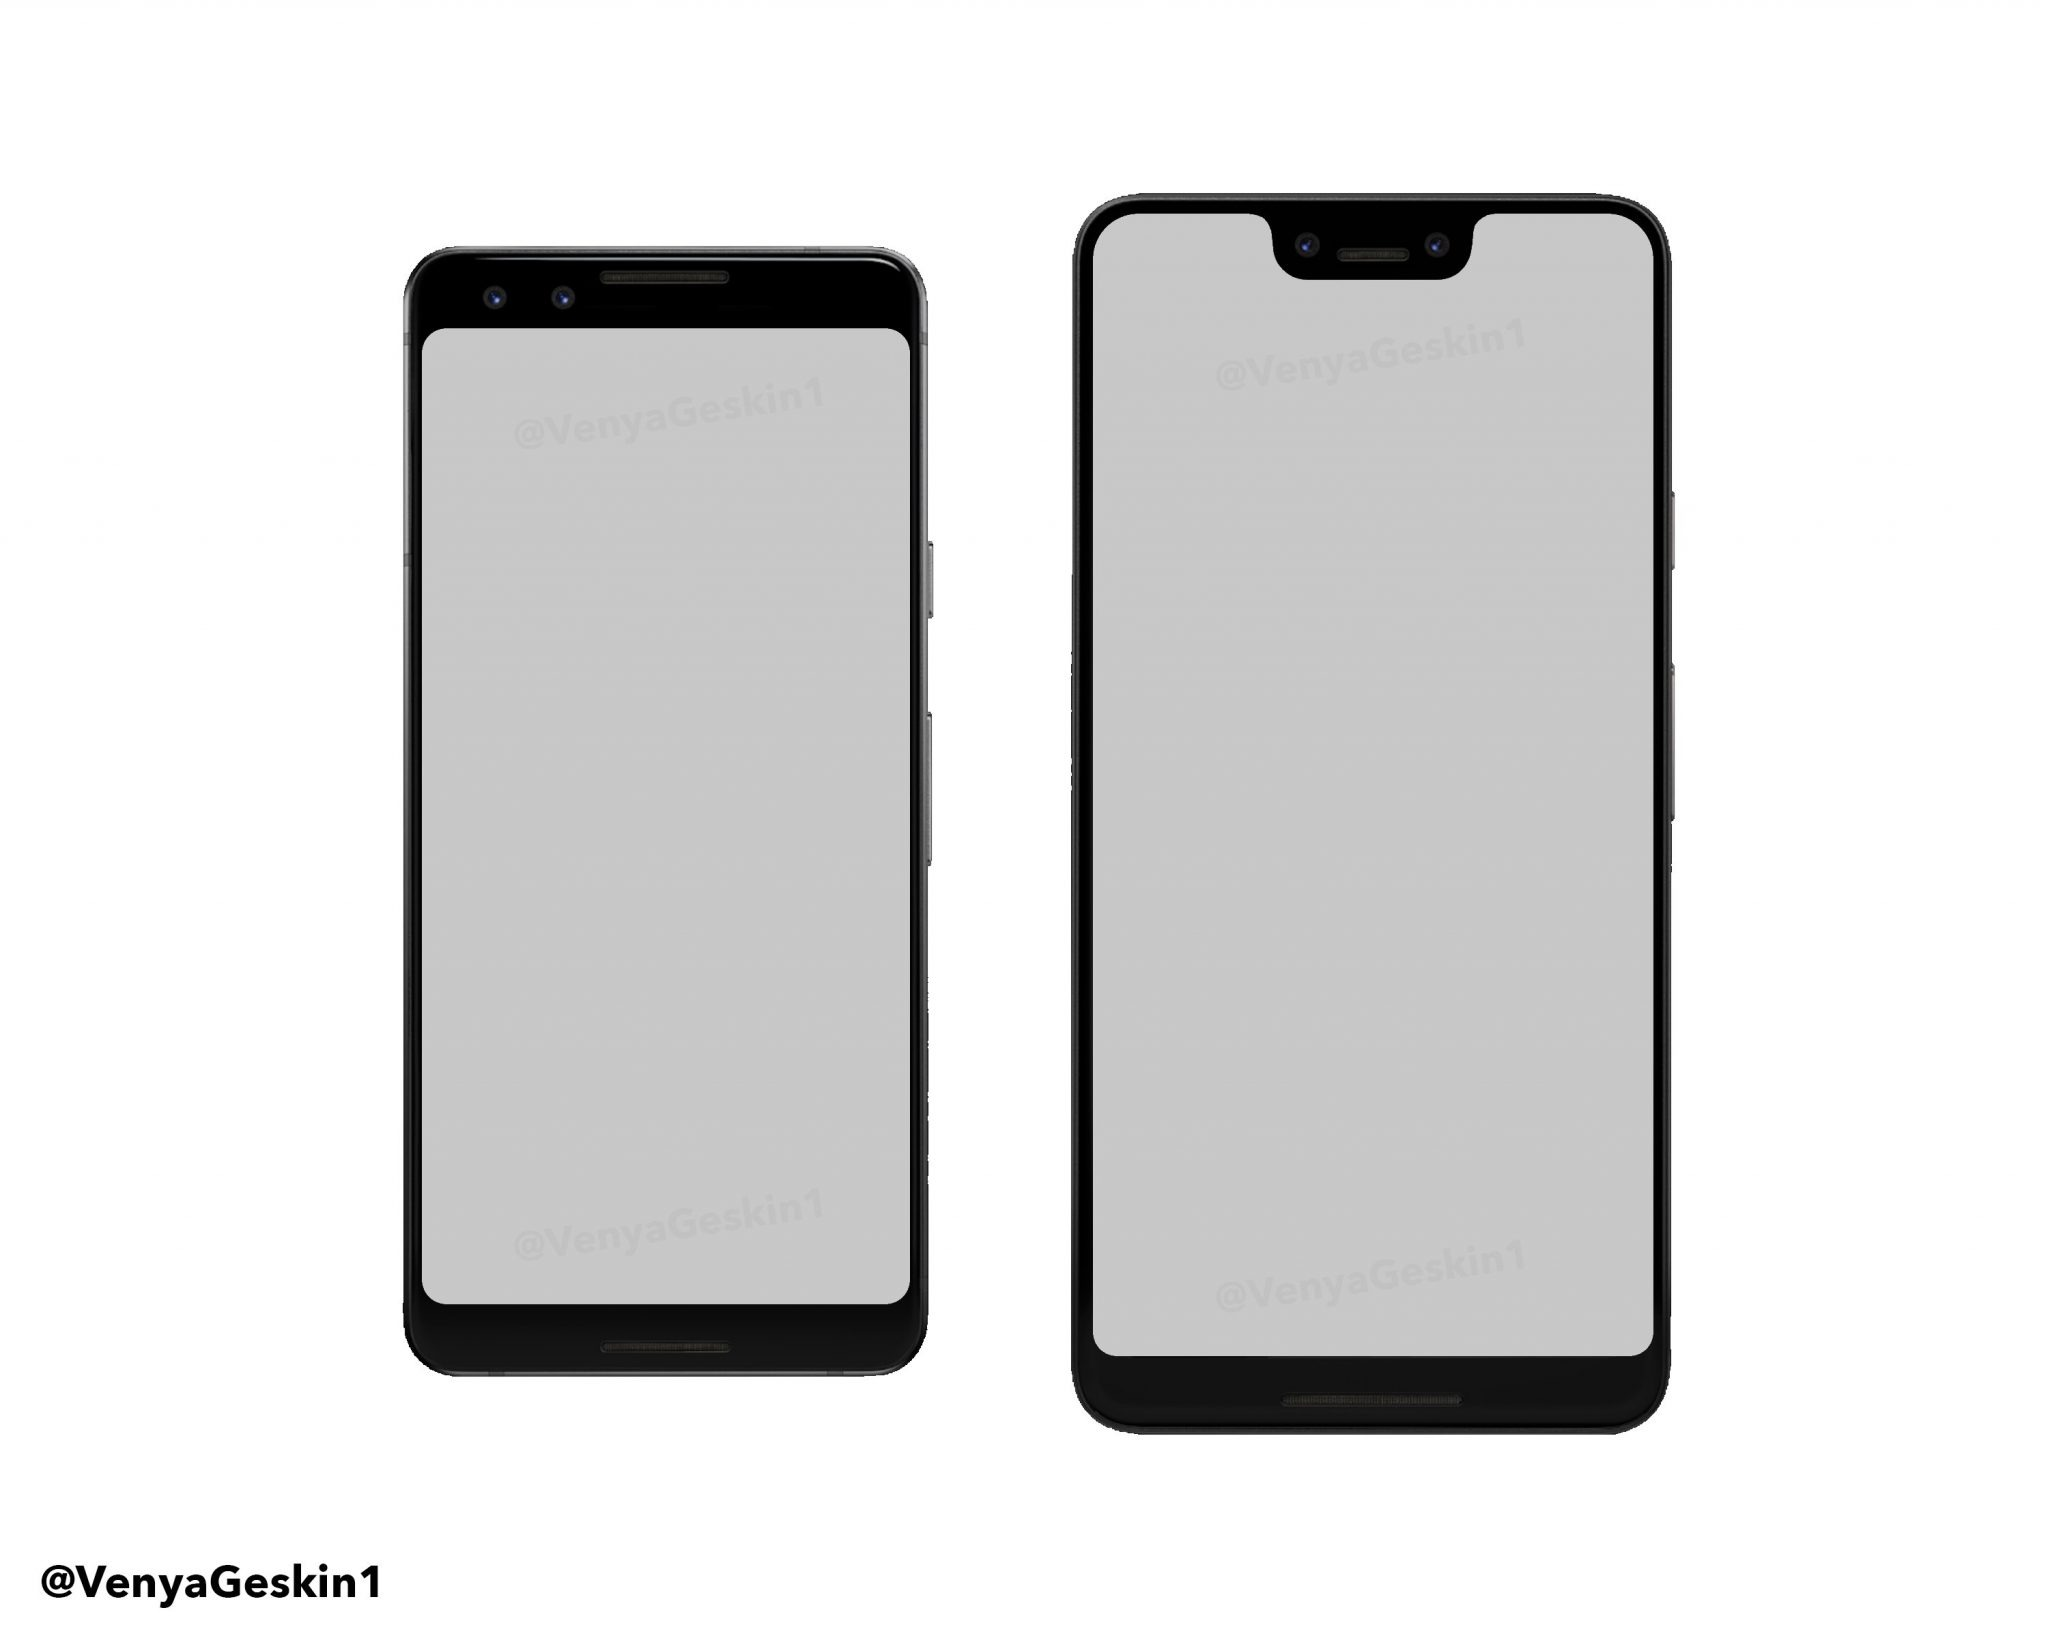 This is probably our first look at the design of Google Pixel 3 & Pixel 3 XL 1